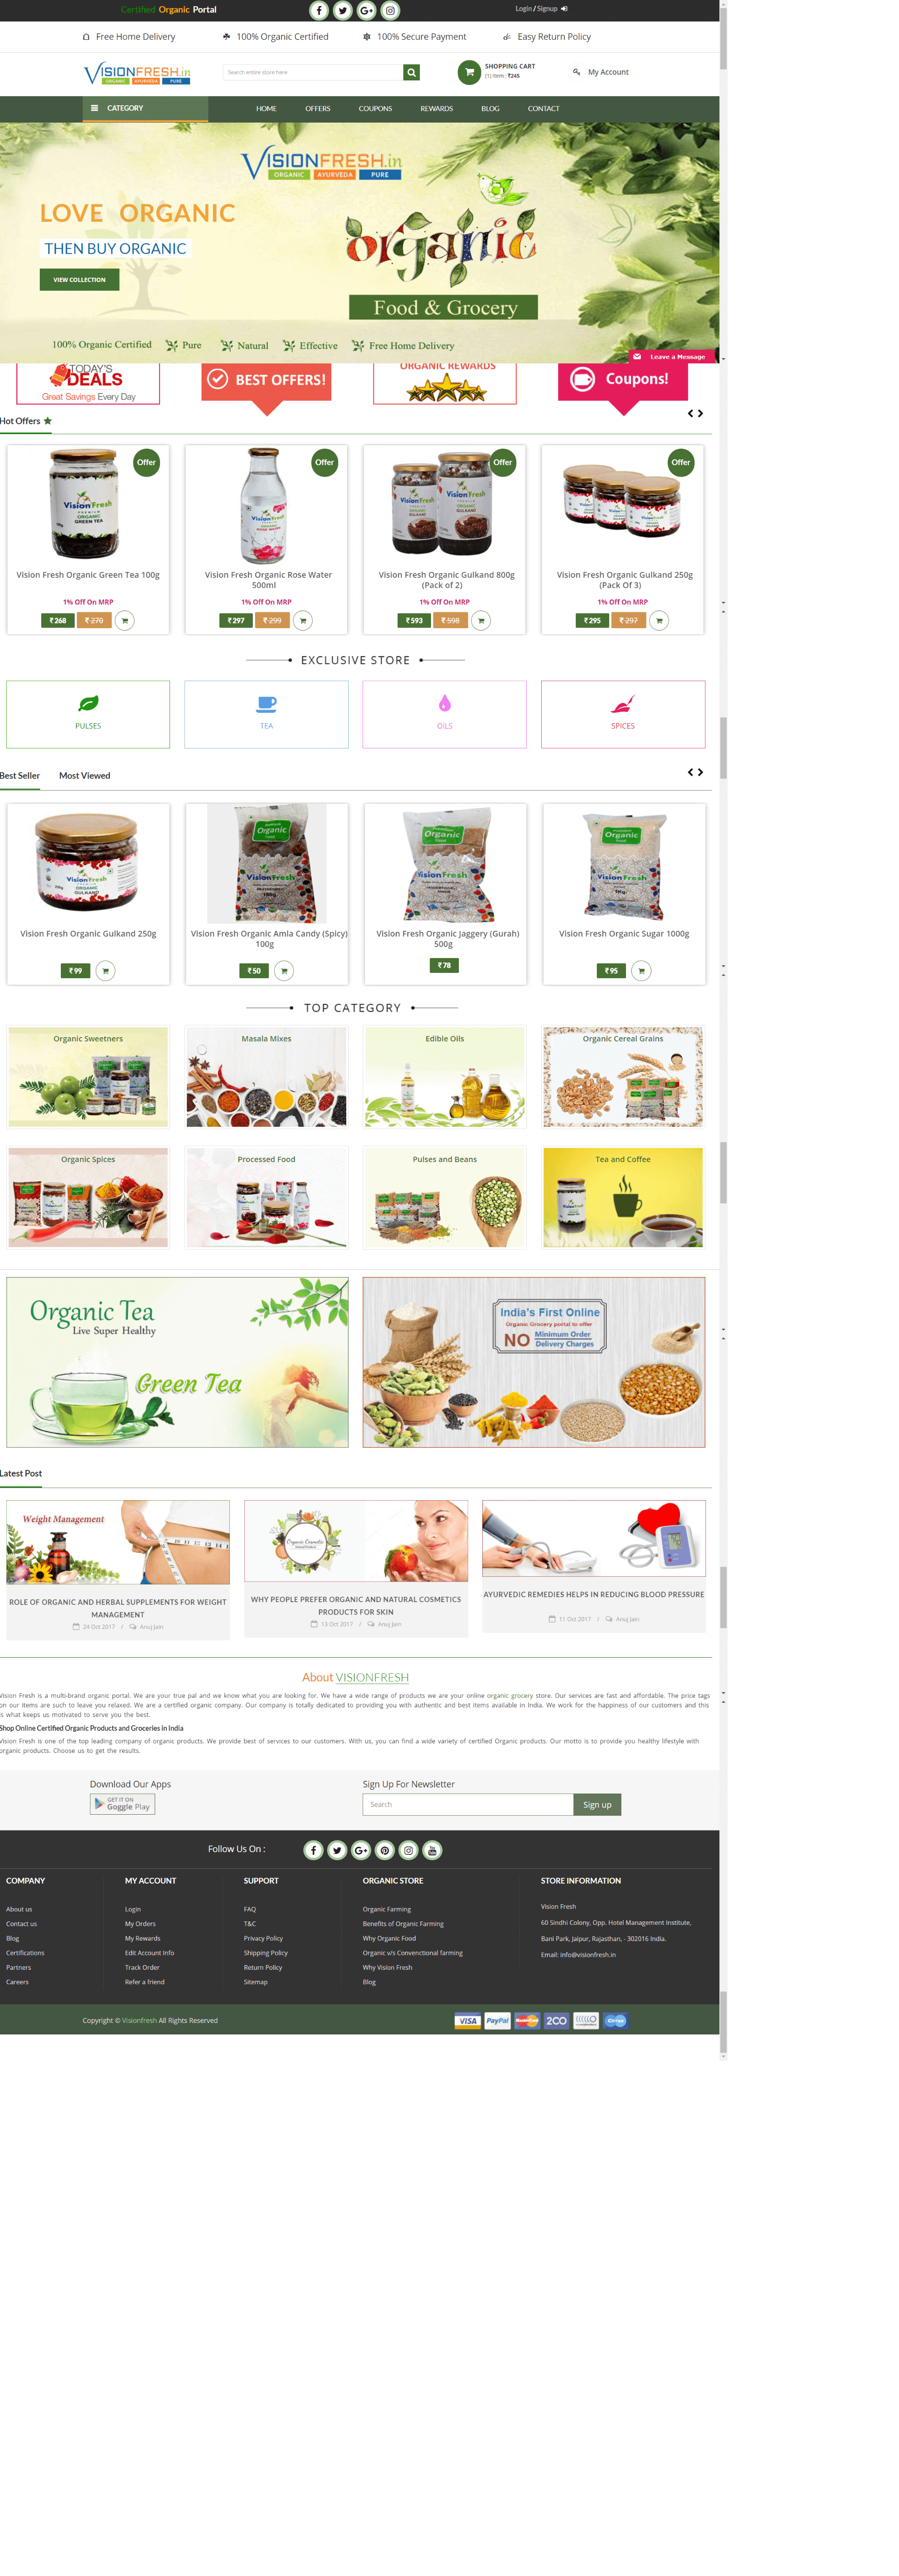 Vision Fresh- Online Organic Food & Grocery Portal